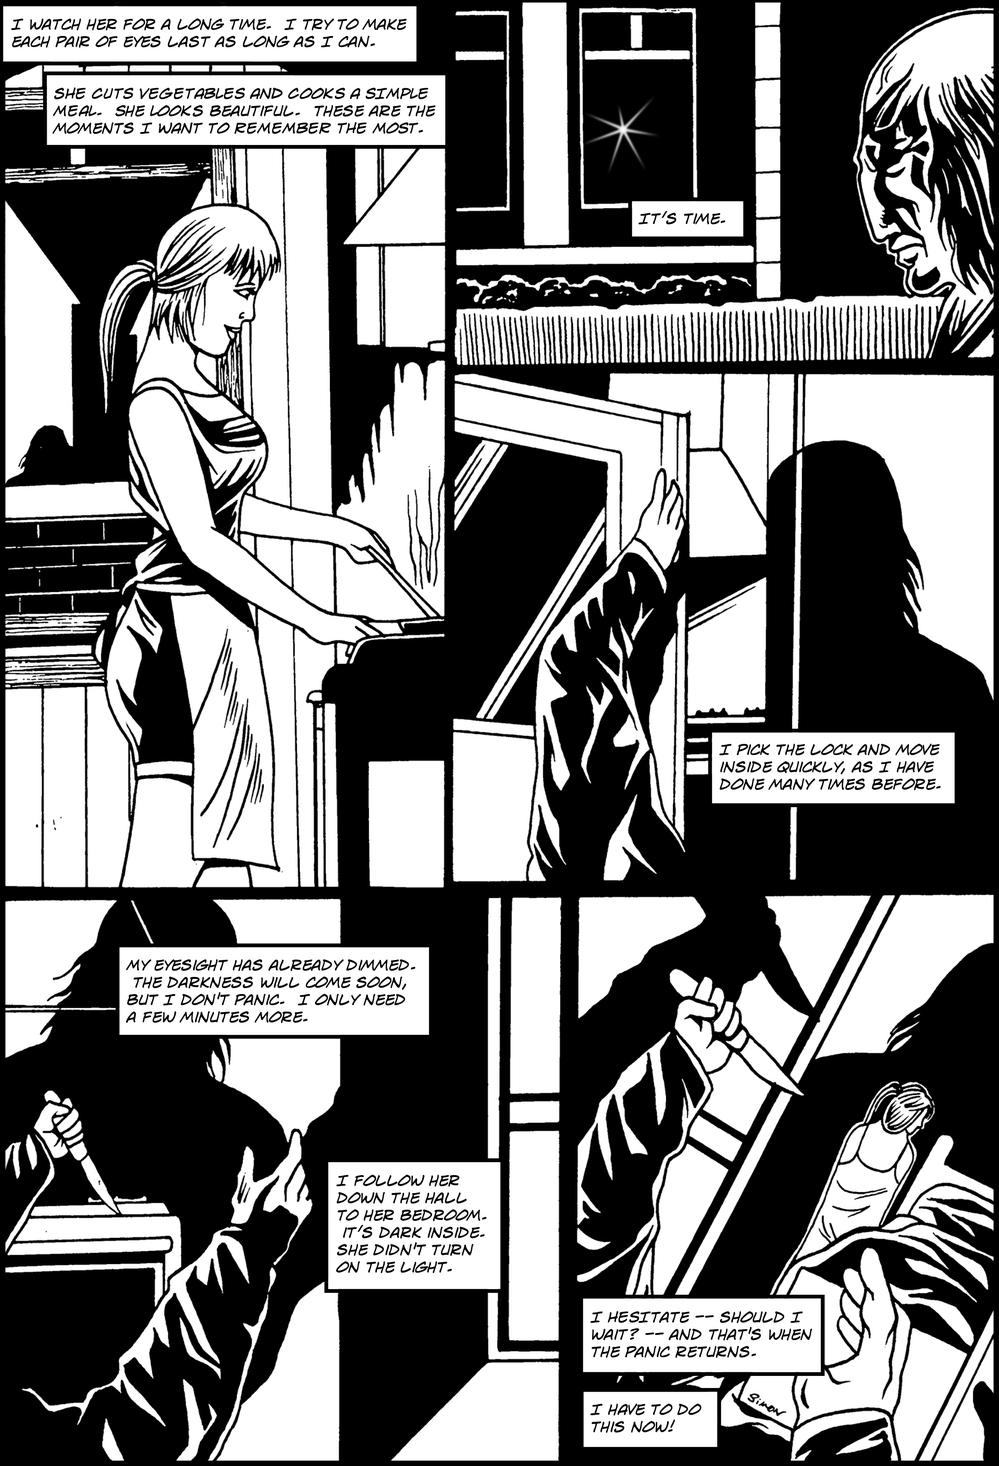 EYES page 5 - story 2 in The Book of Lies